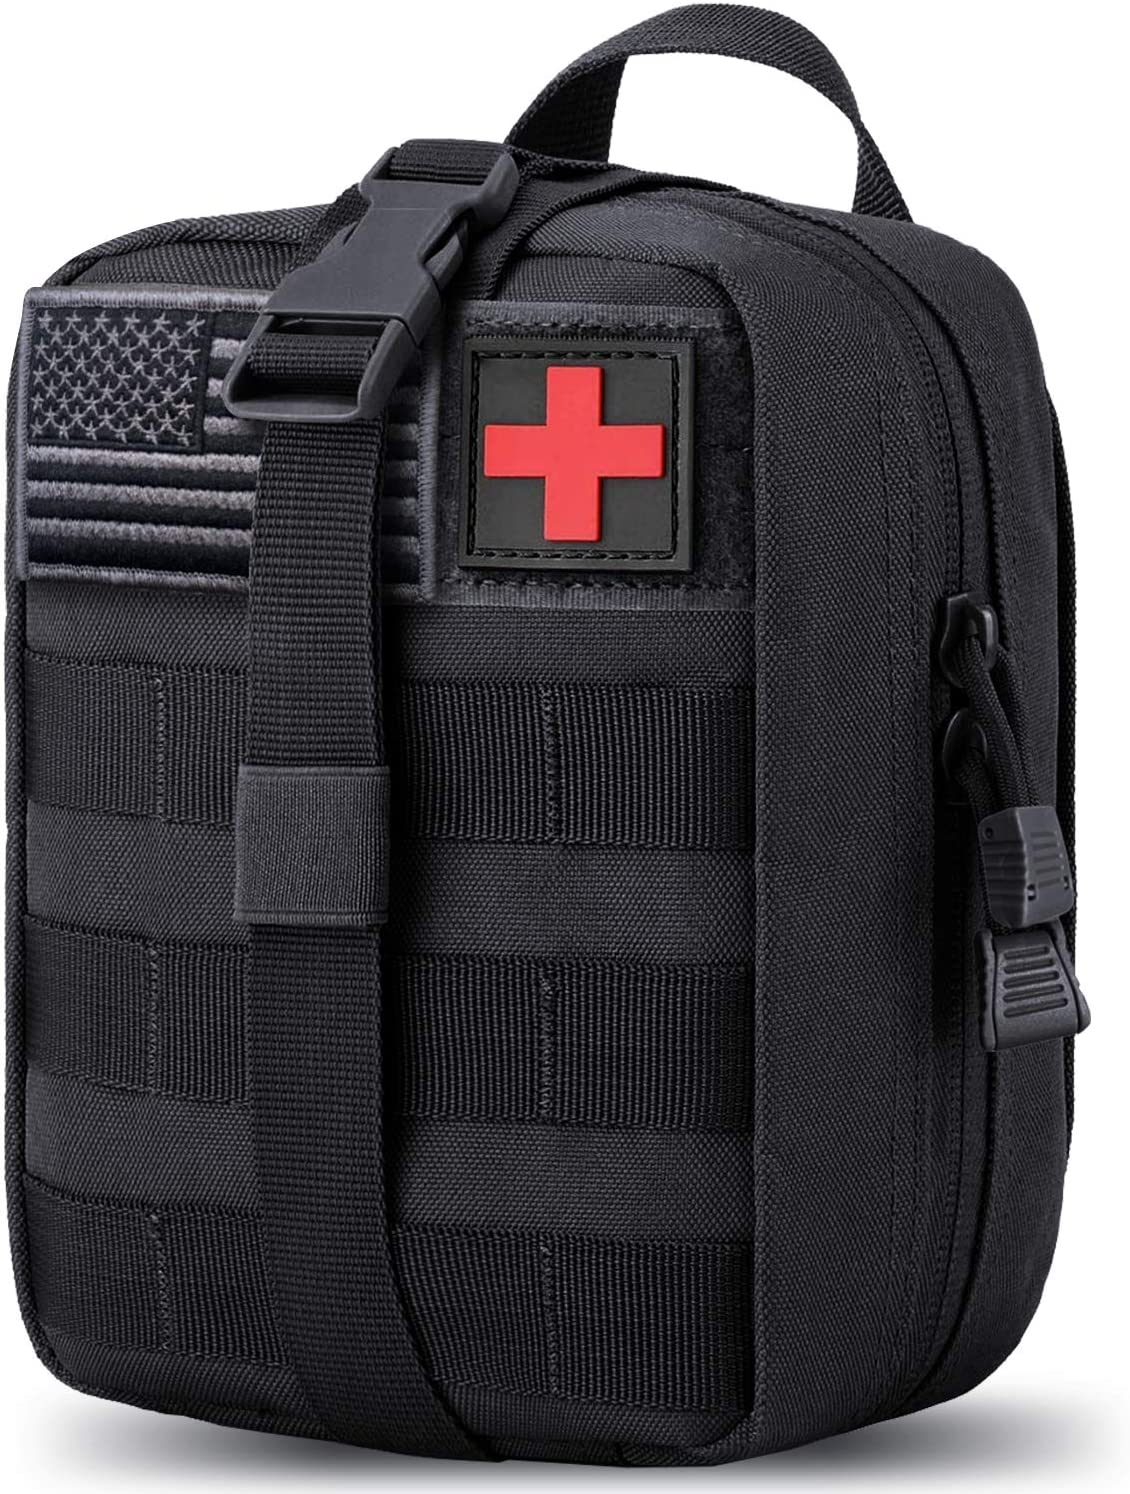 MEQI Medical MOLLE Tactical Pouch, EMT First Aid IFAK Rip-Away Utility Pouch for Camping Hunting Hiking Home Car and Adventures (Ink Black) : Sports & Outdoors